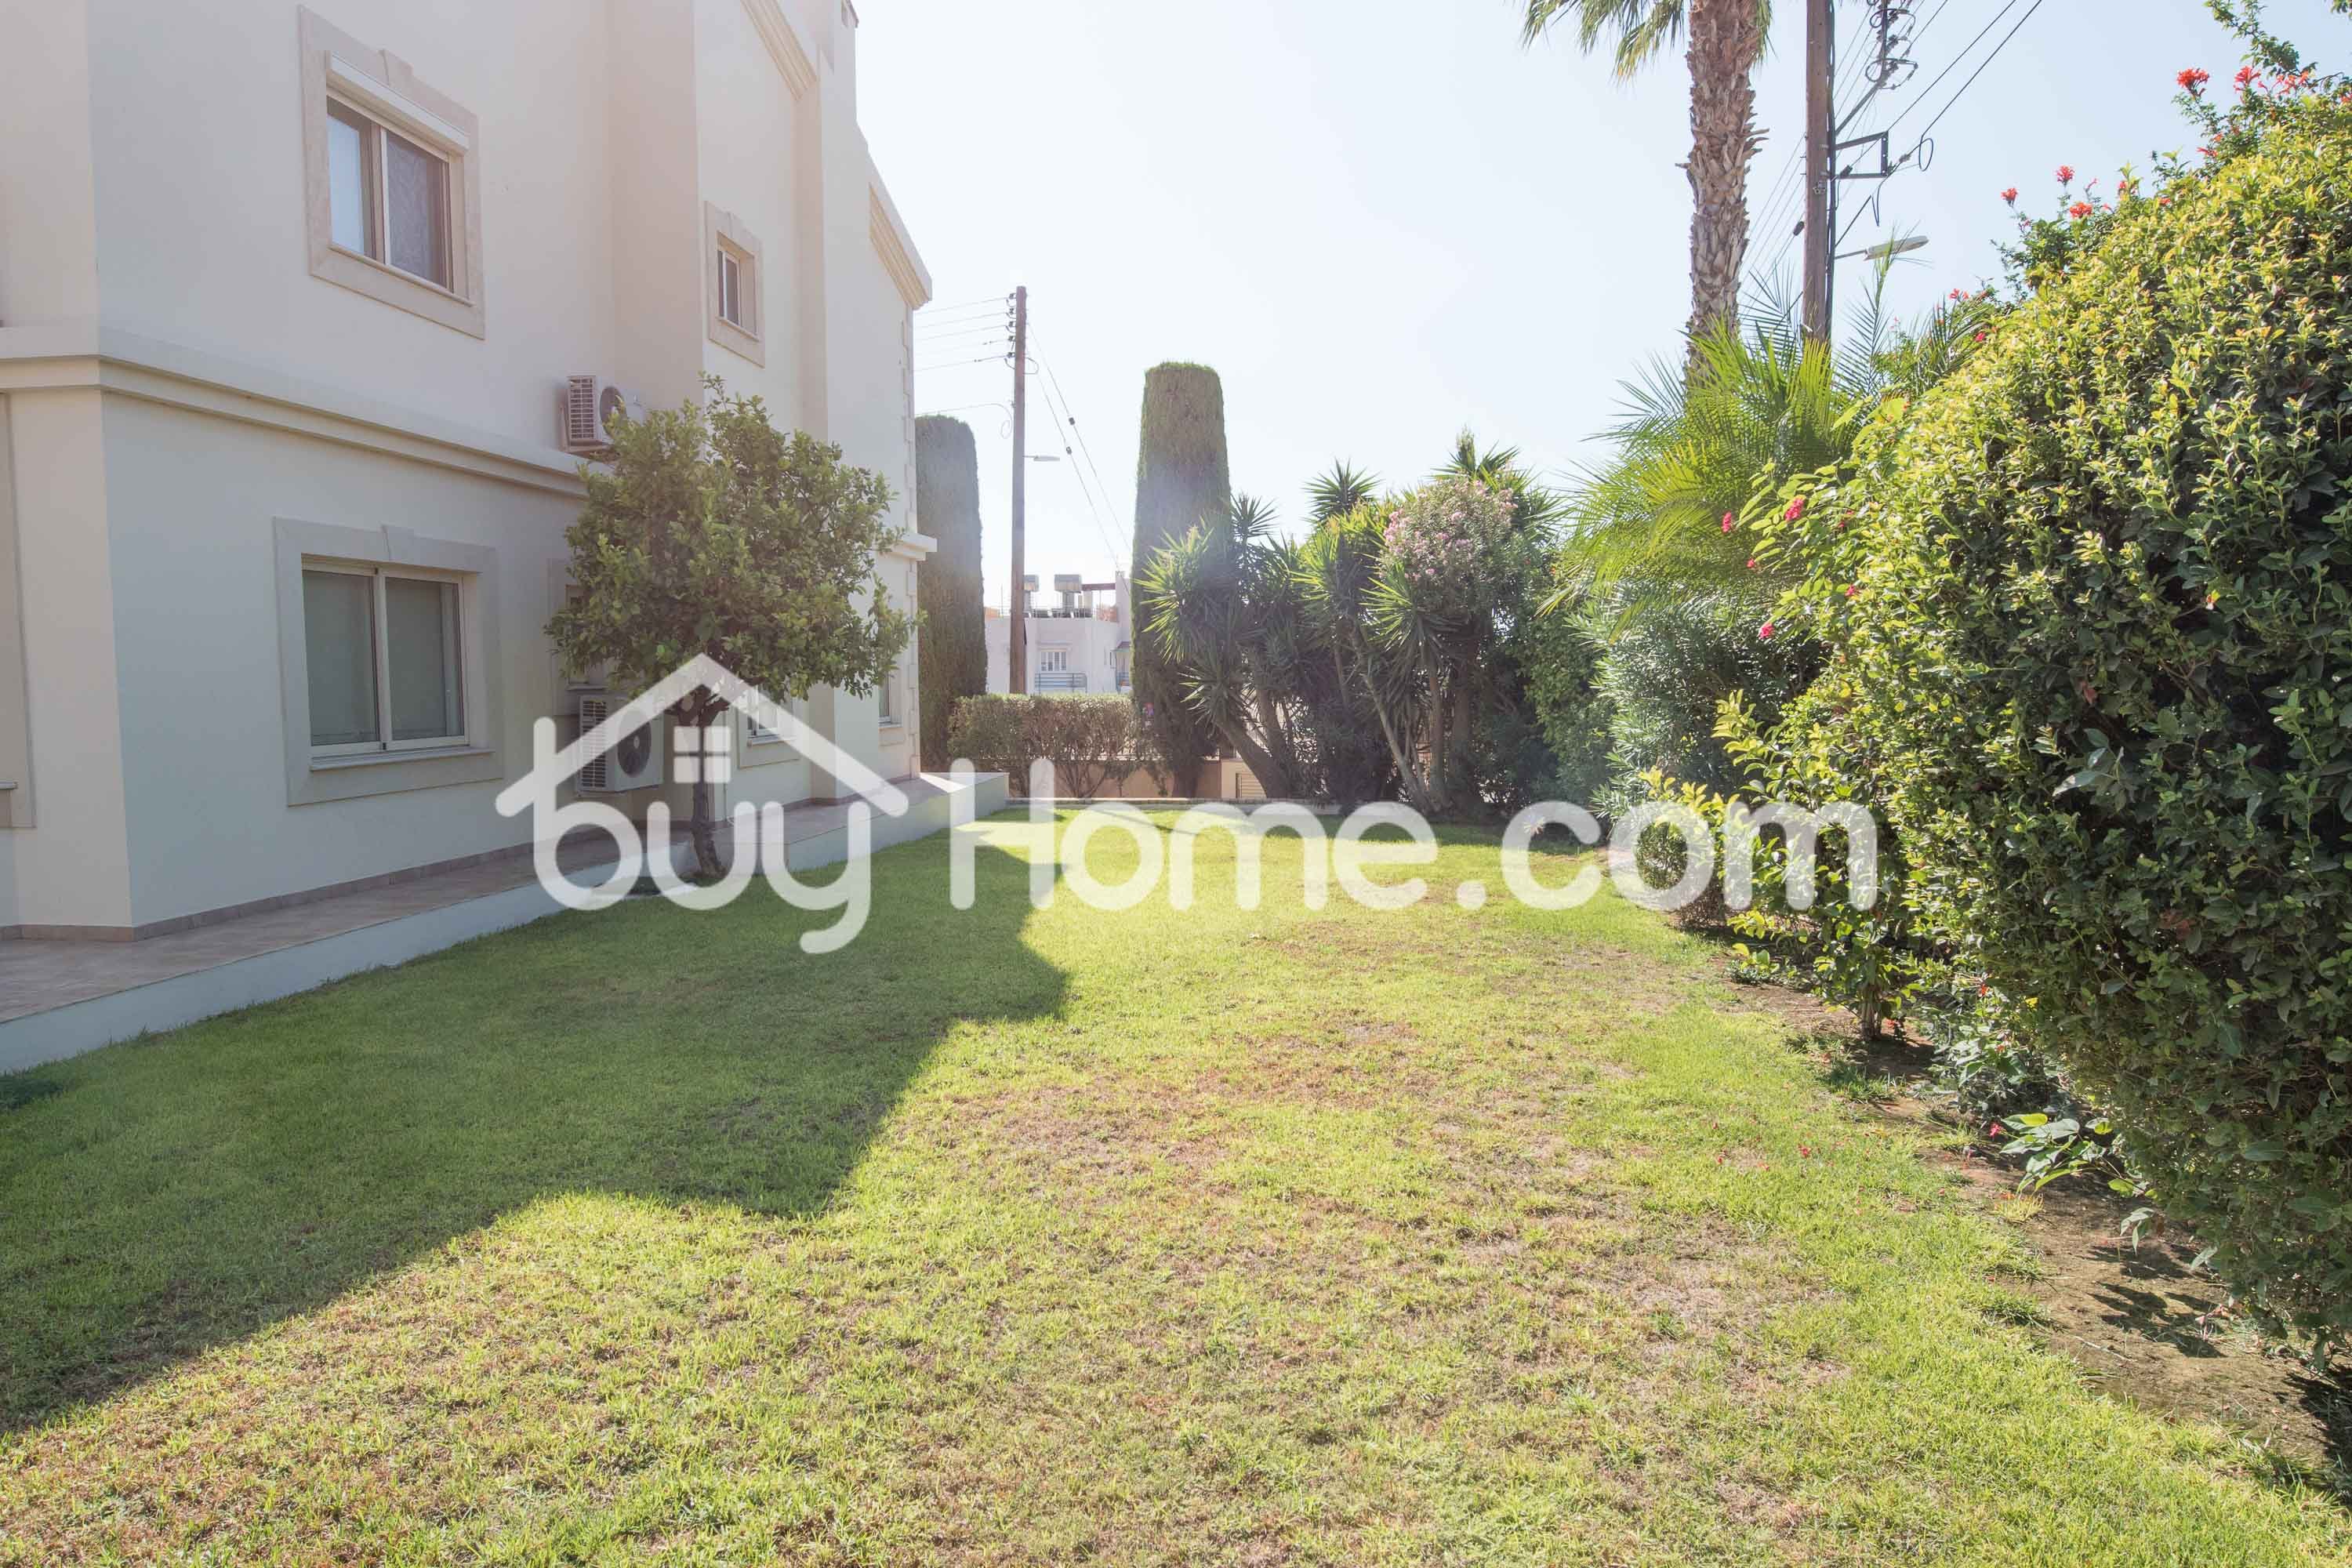 Family House For Rent   BuyHome